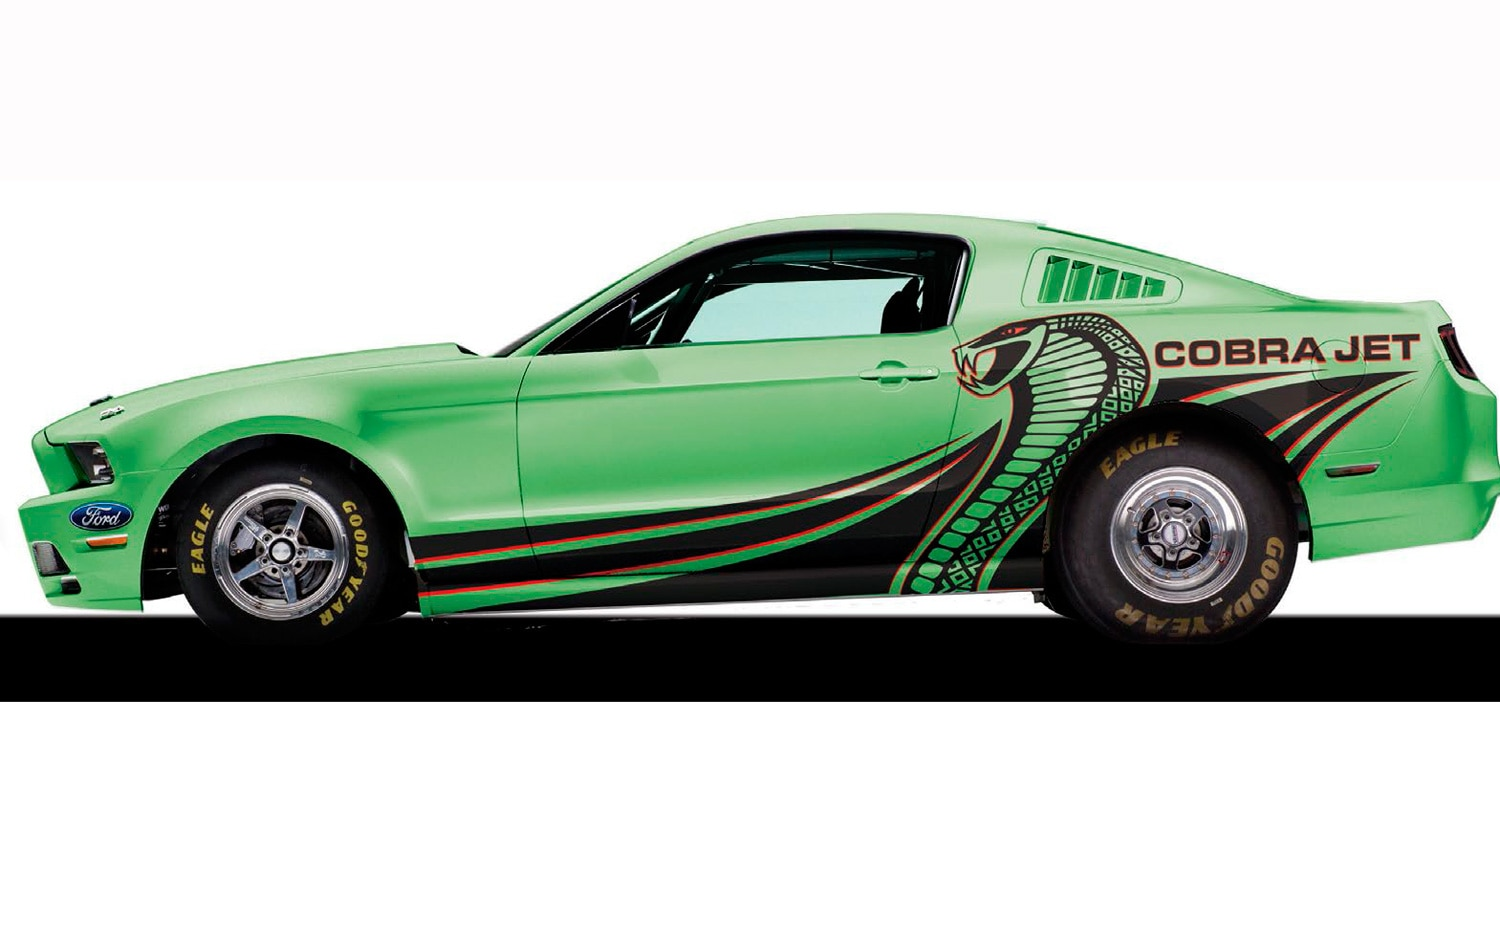 2014 ford mustang cobra jet side view green